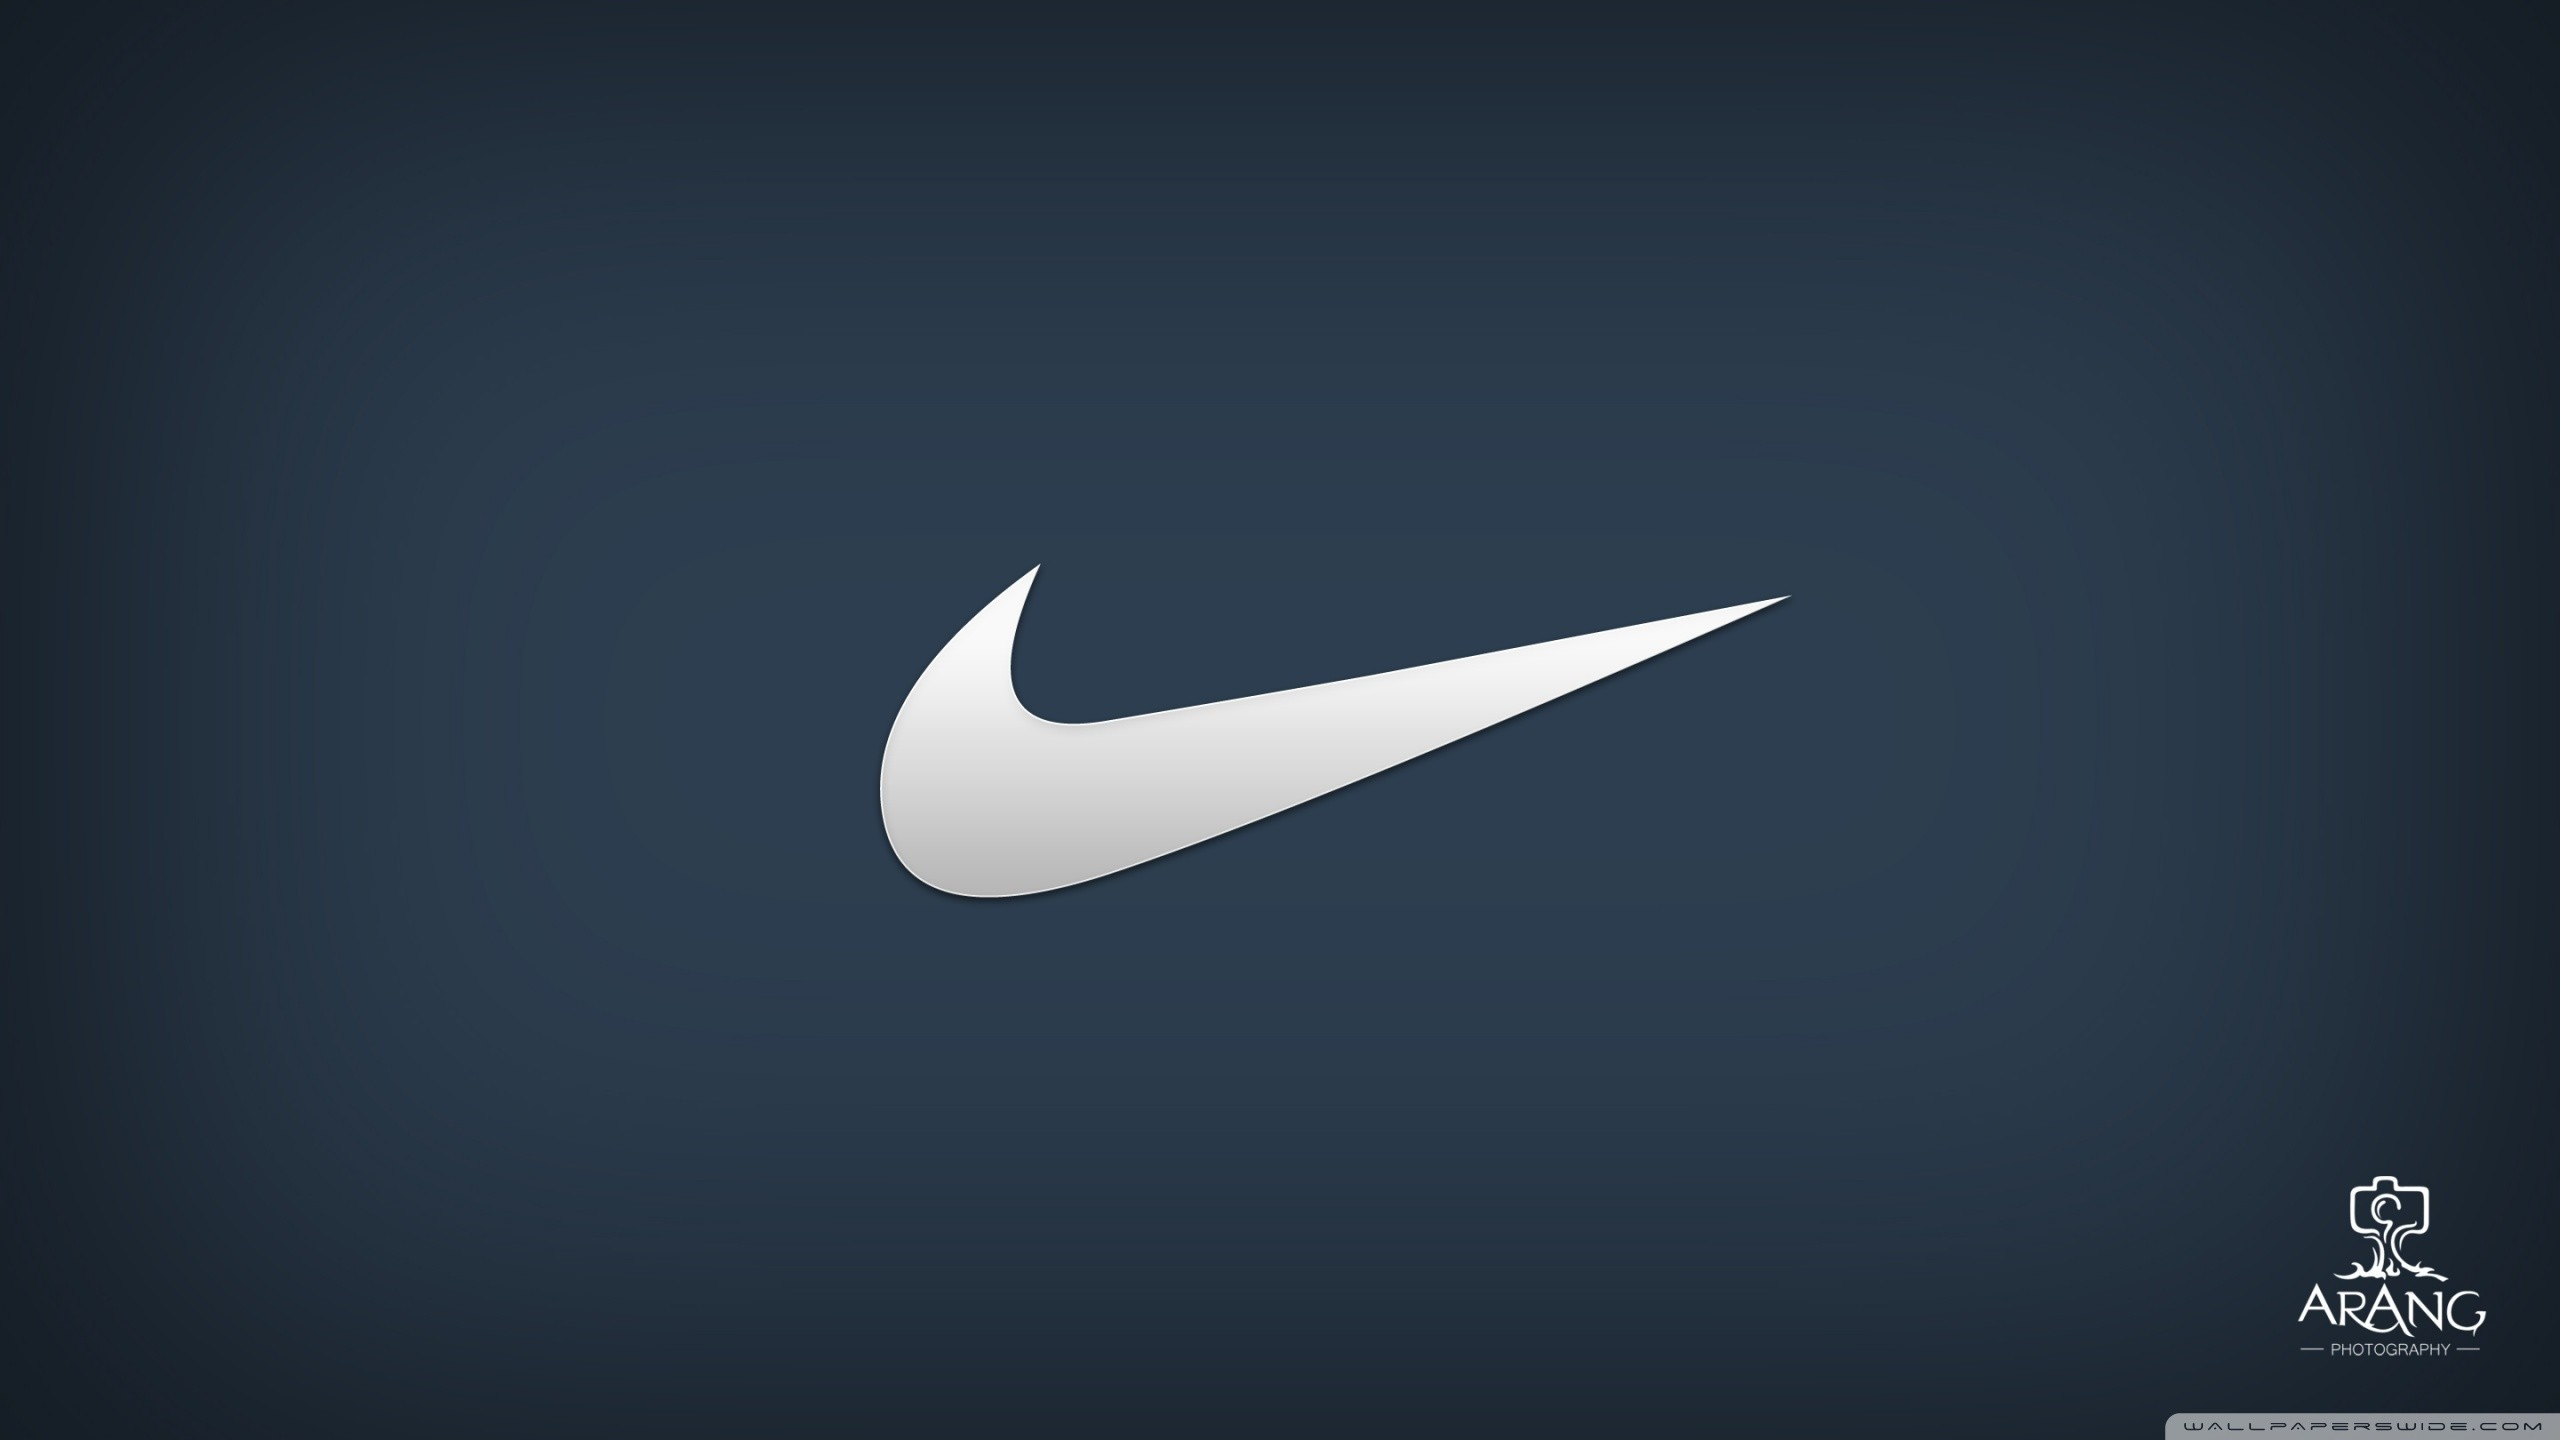 Nike logo wallpaper hd 2018 64 images - Nike wallpaper hd ...